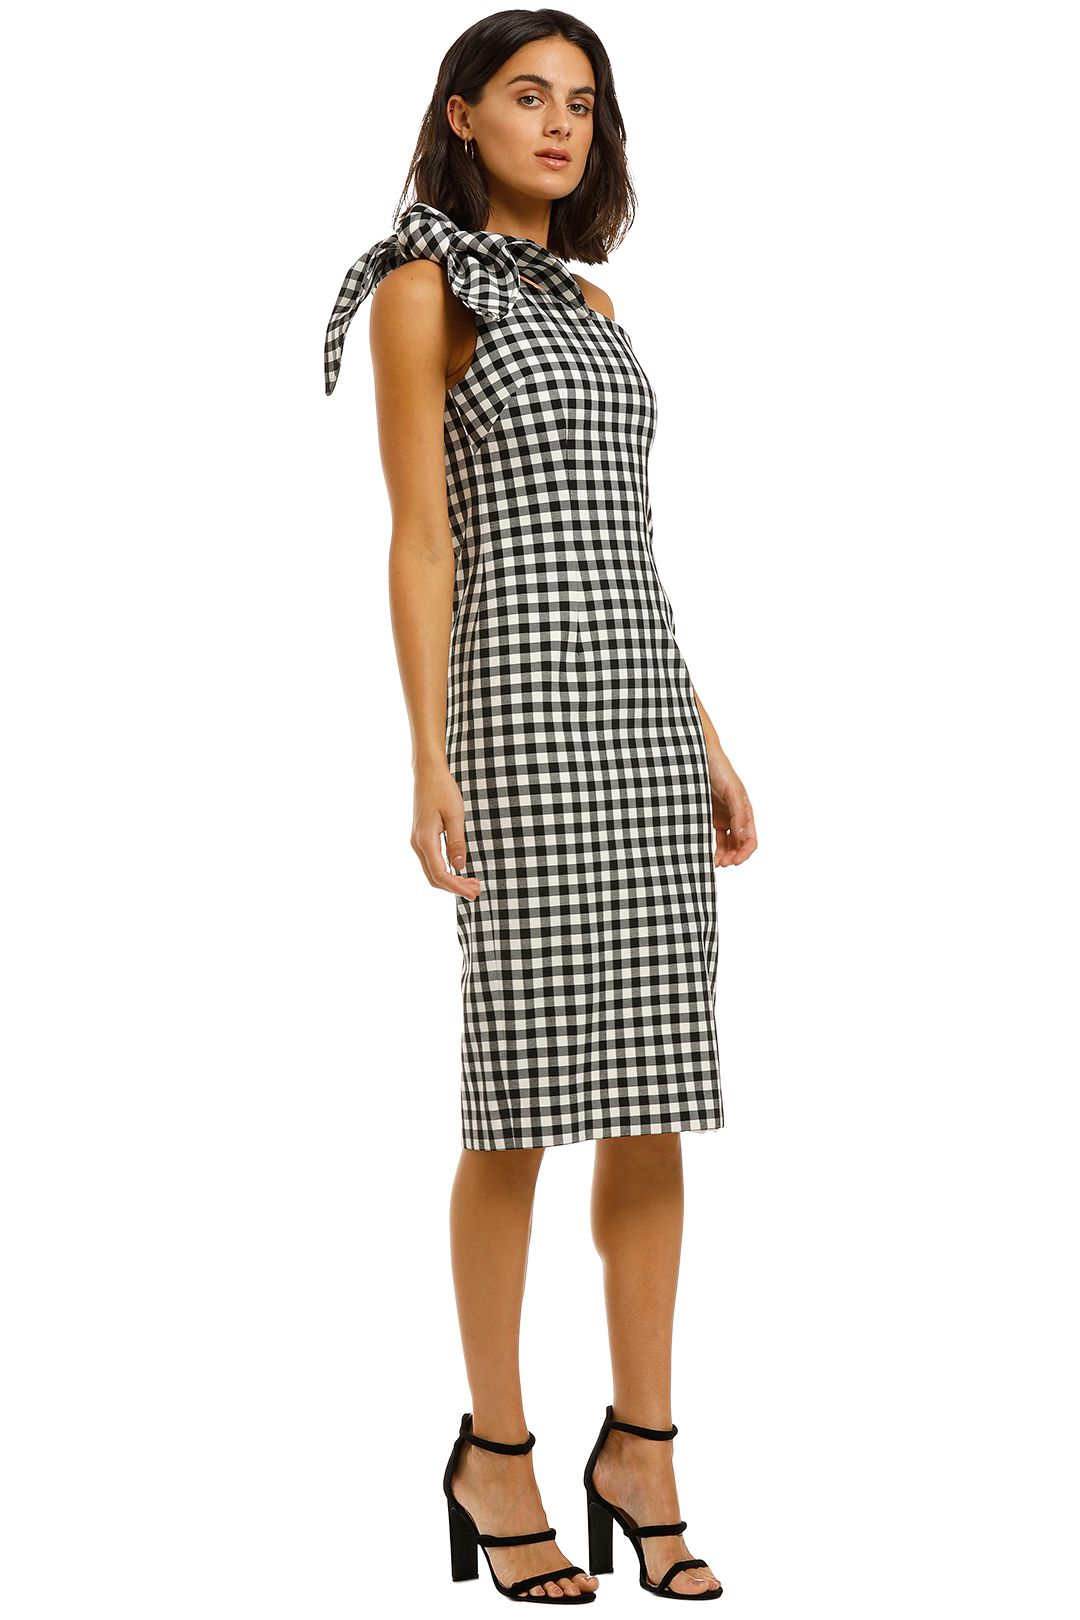 By-Johnny-Georgie-Gingham-Tie-Midi-Black-and-White-Side